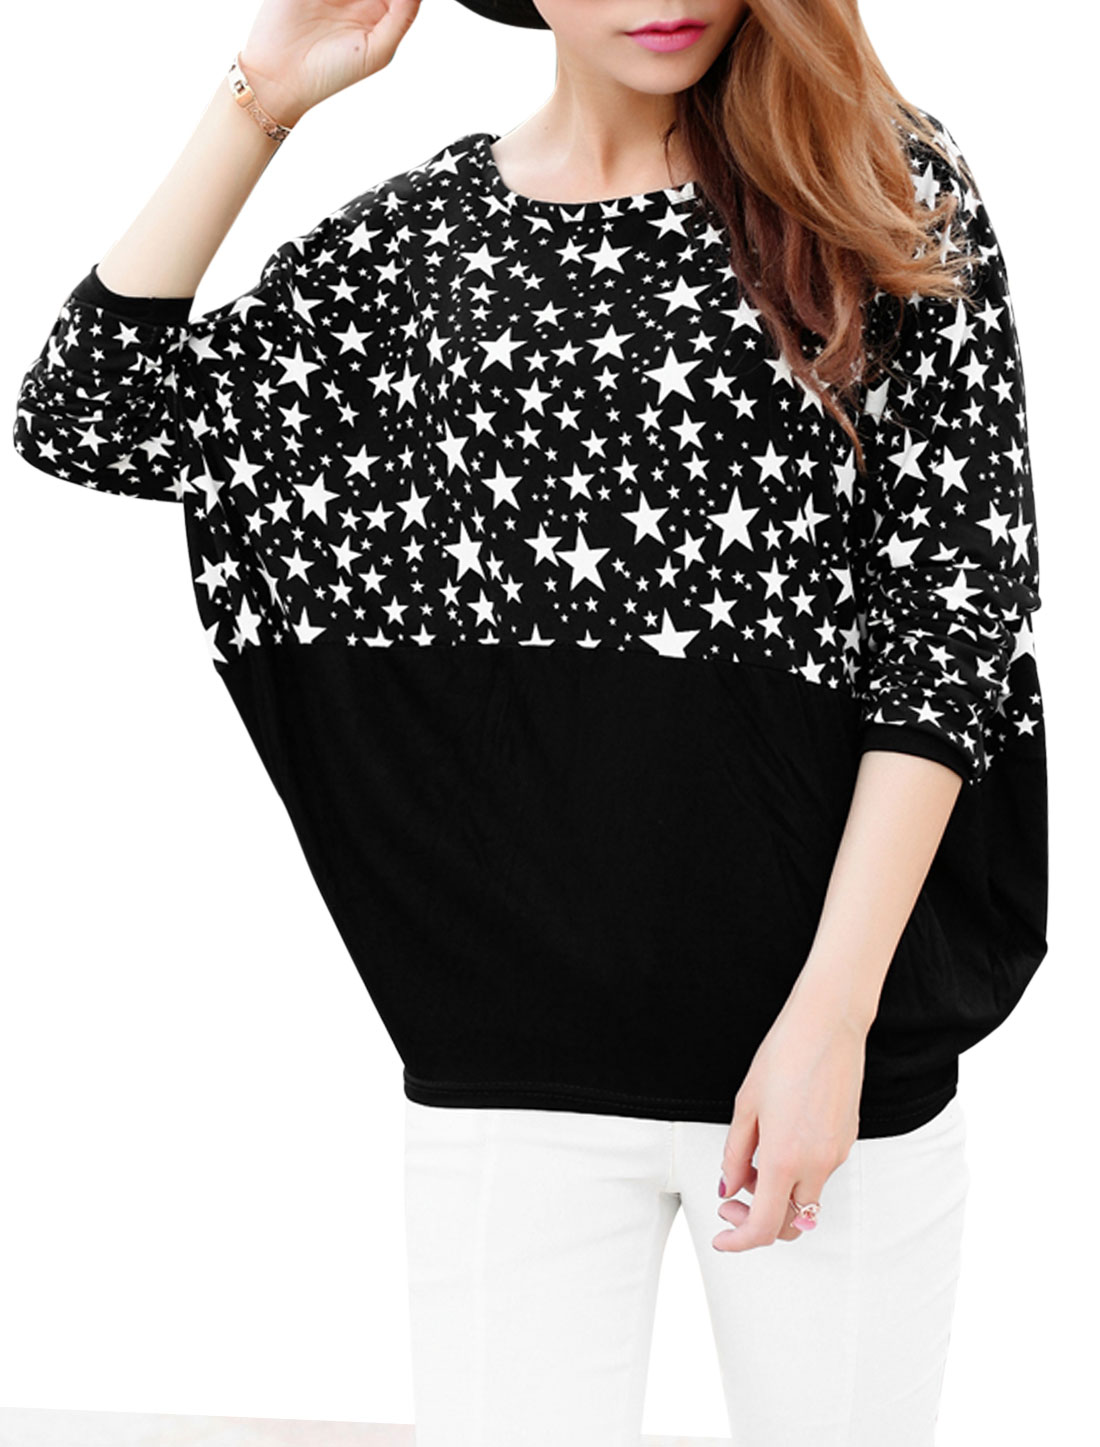 Ladies Stars Print Patched Design Contrast Color Loose Fit Top Black XS